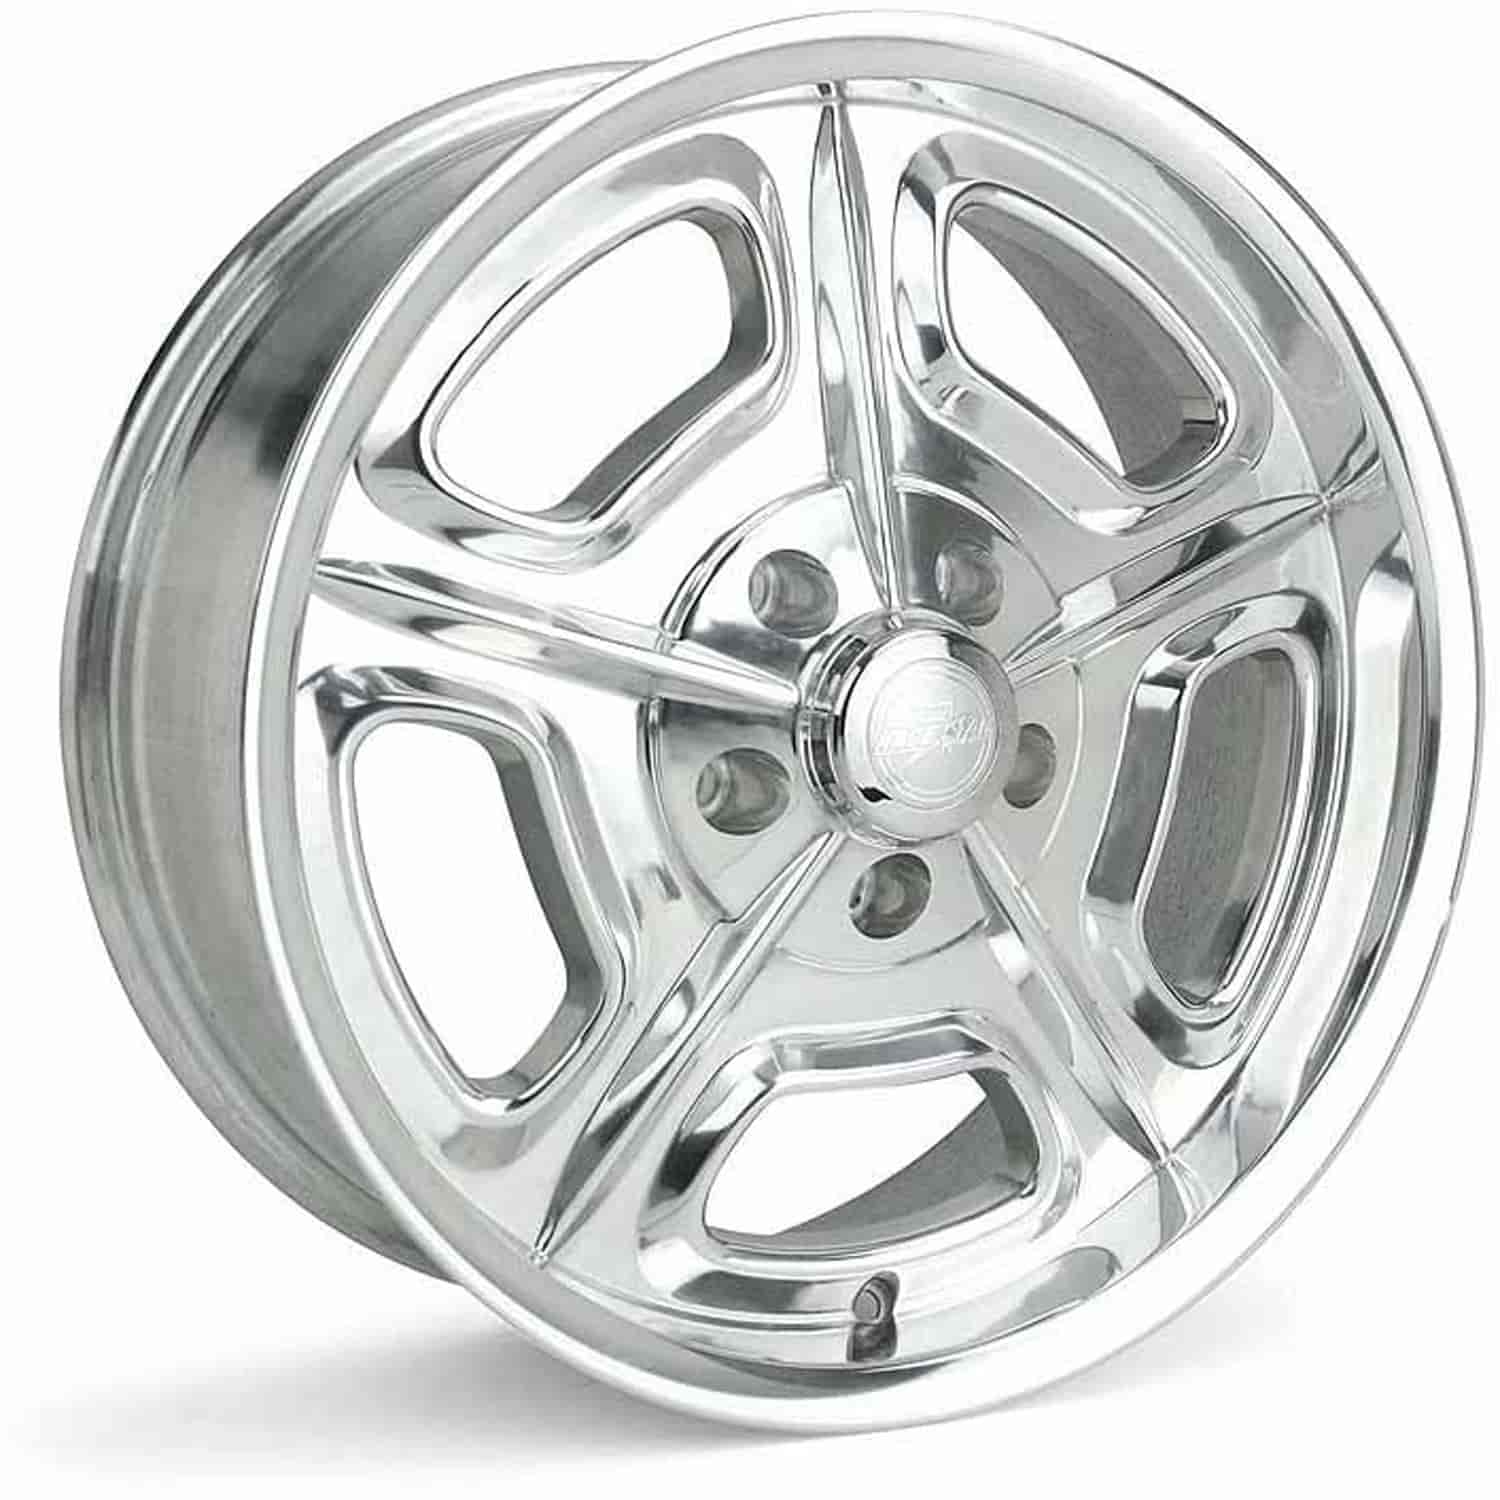 Race Star Wheels 32-870249P